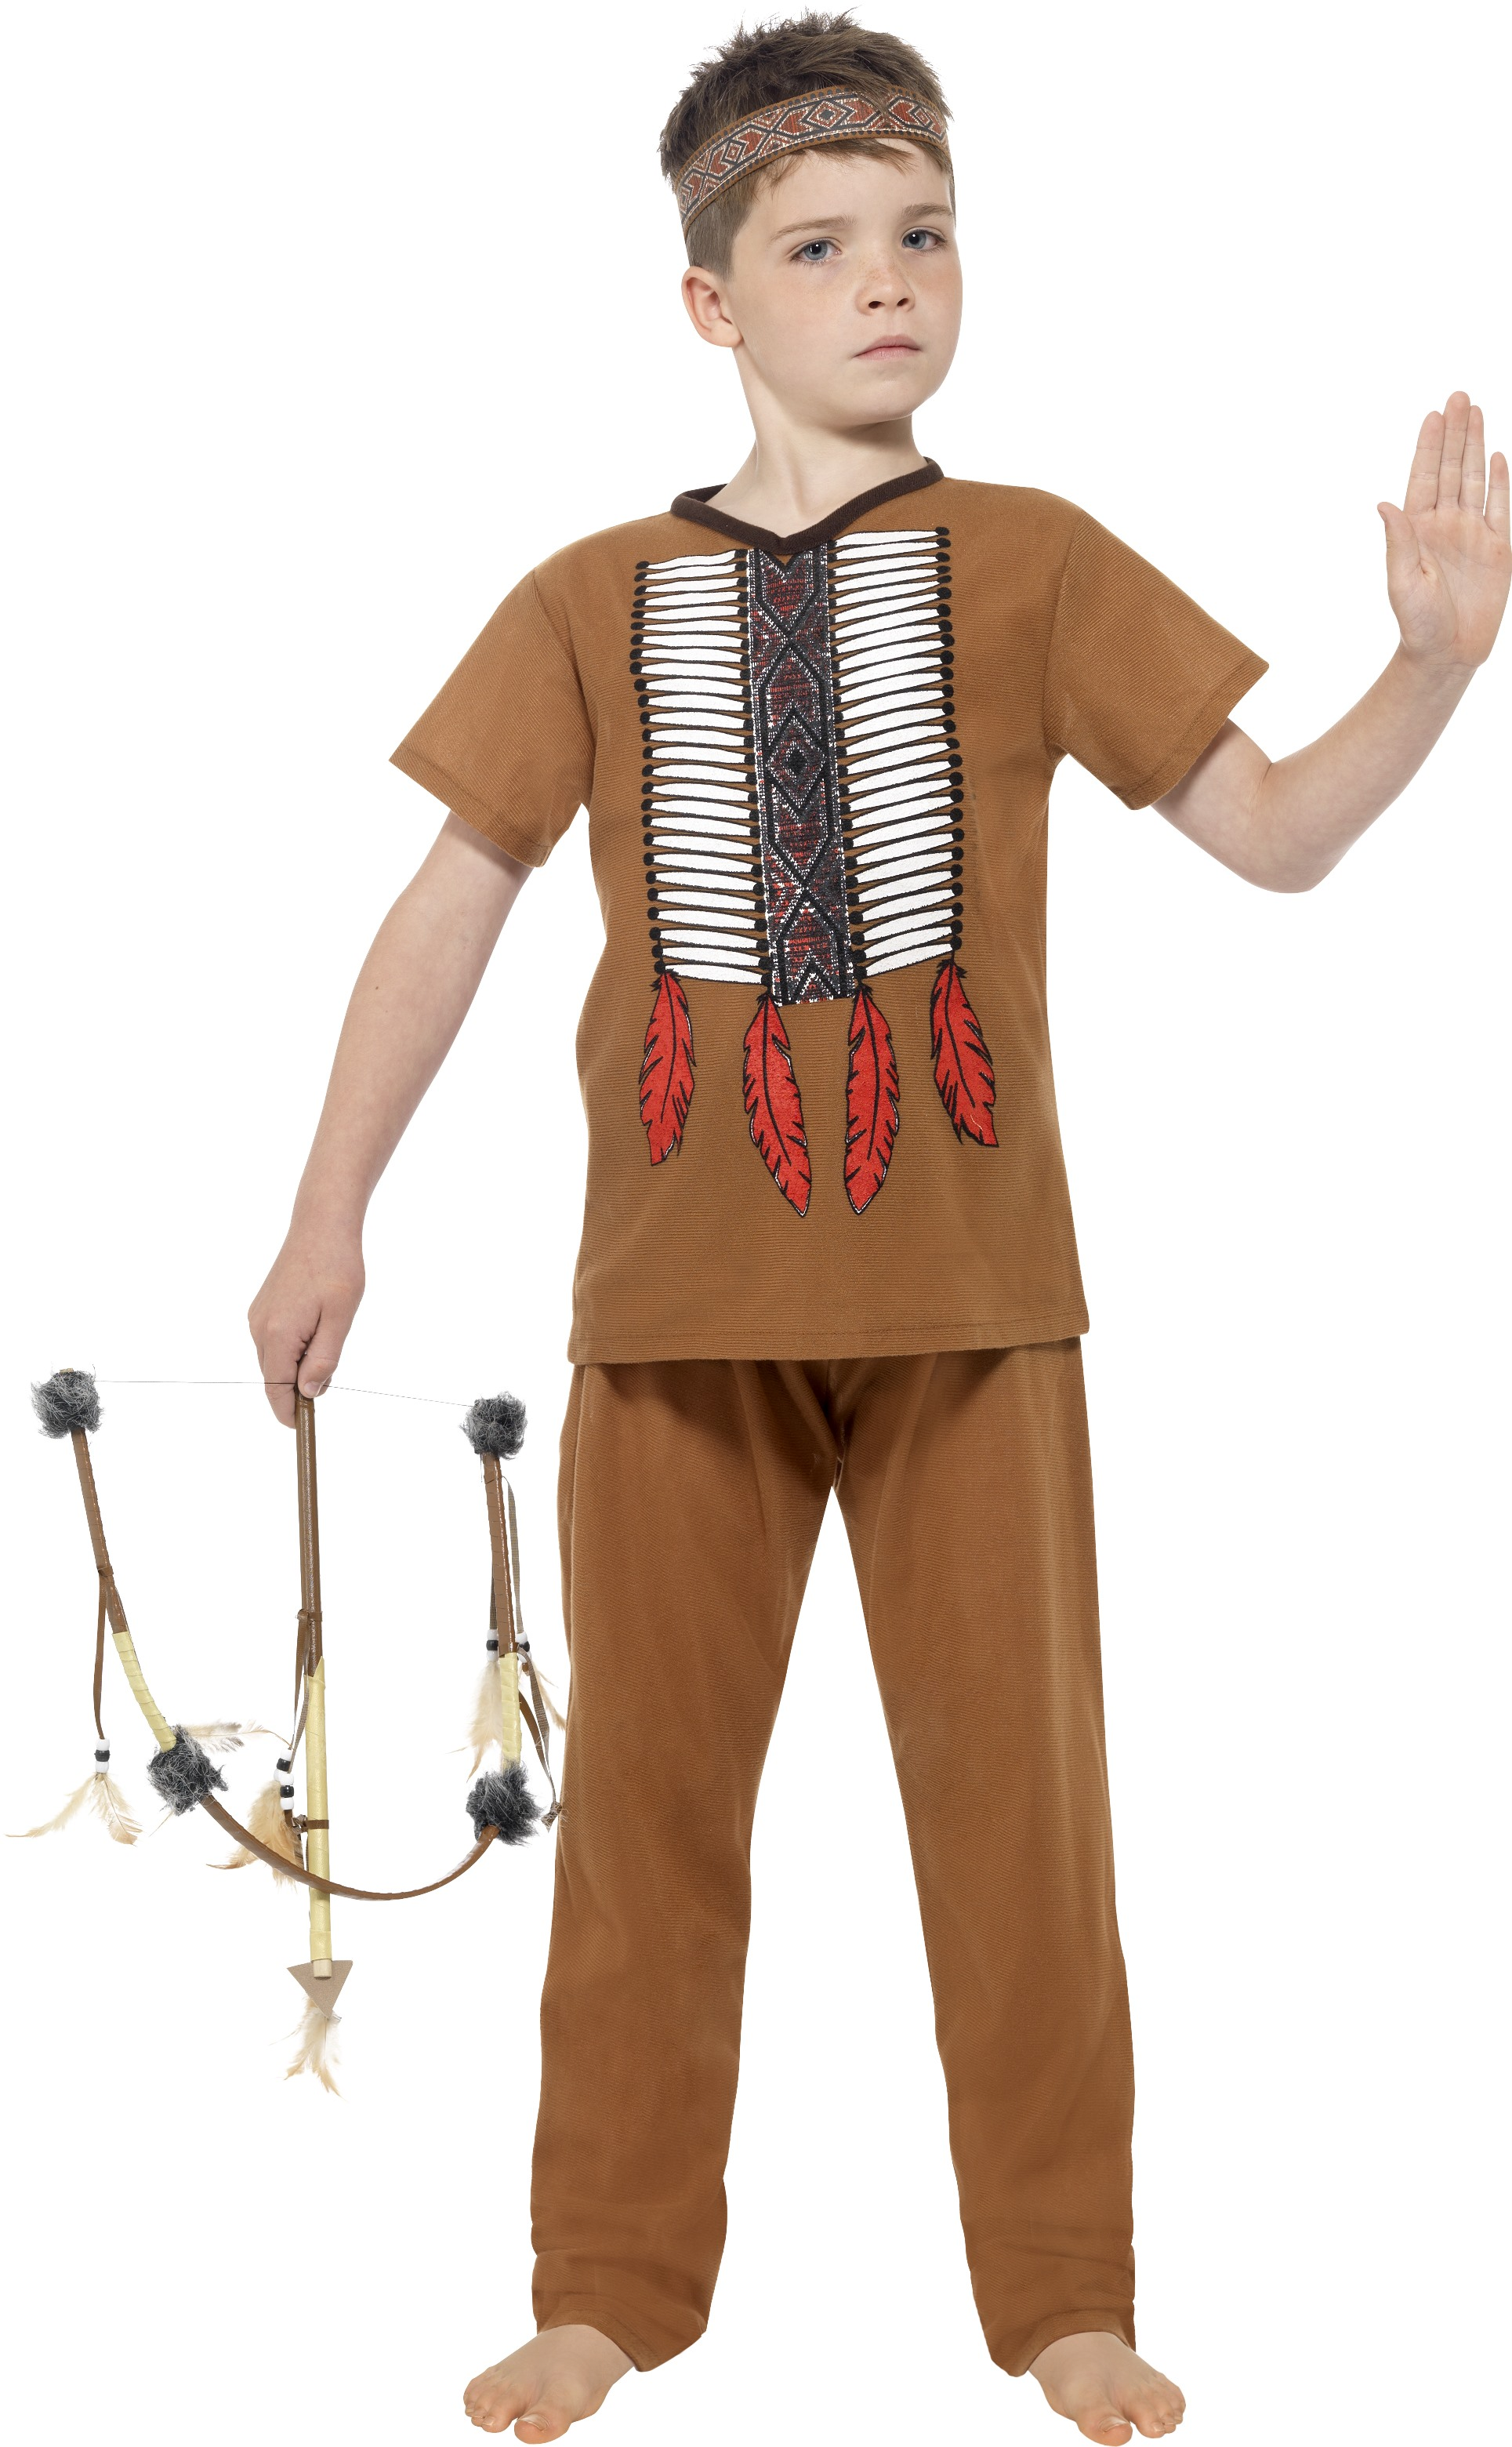 Native American Indian Girls Fancy Dress Wild Western Kids Childs Costume Outfit